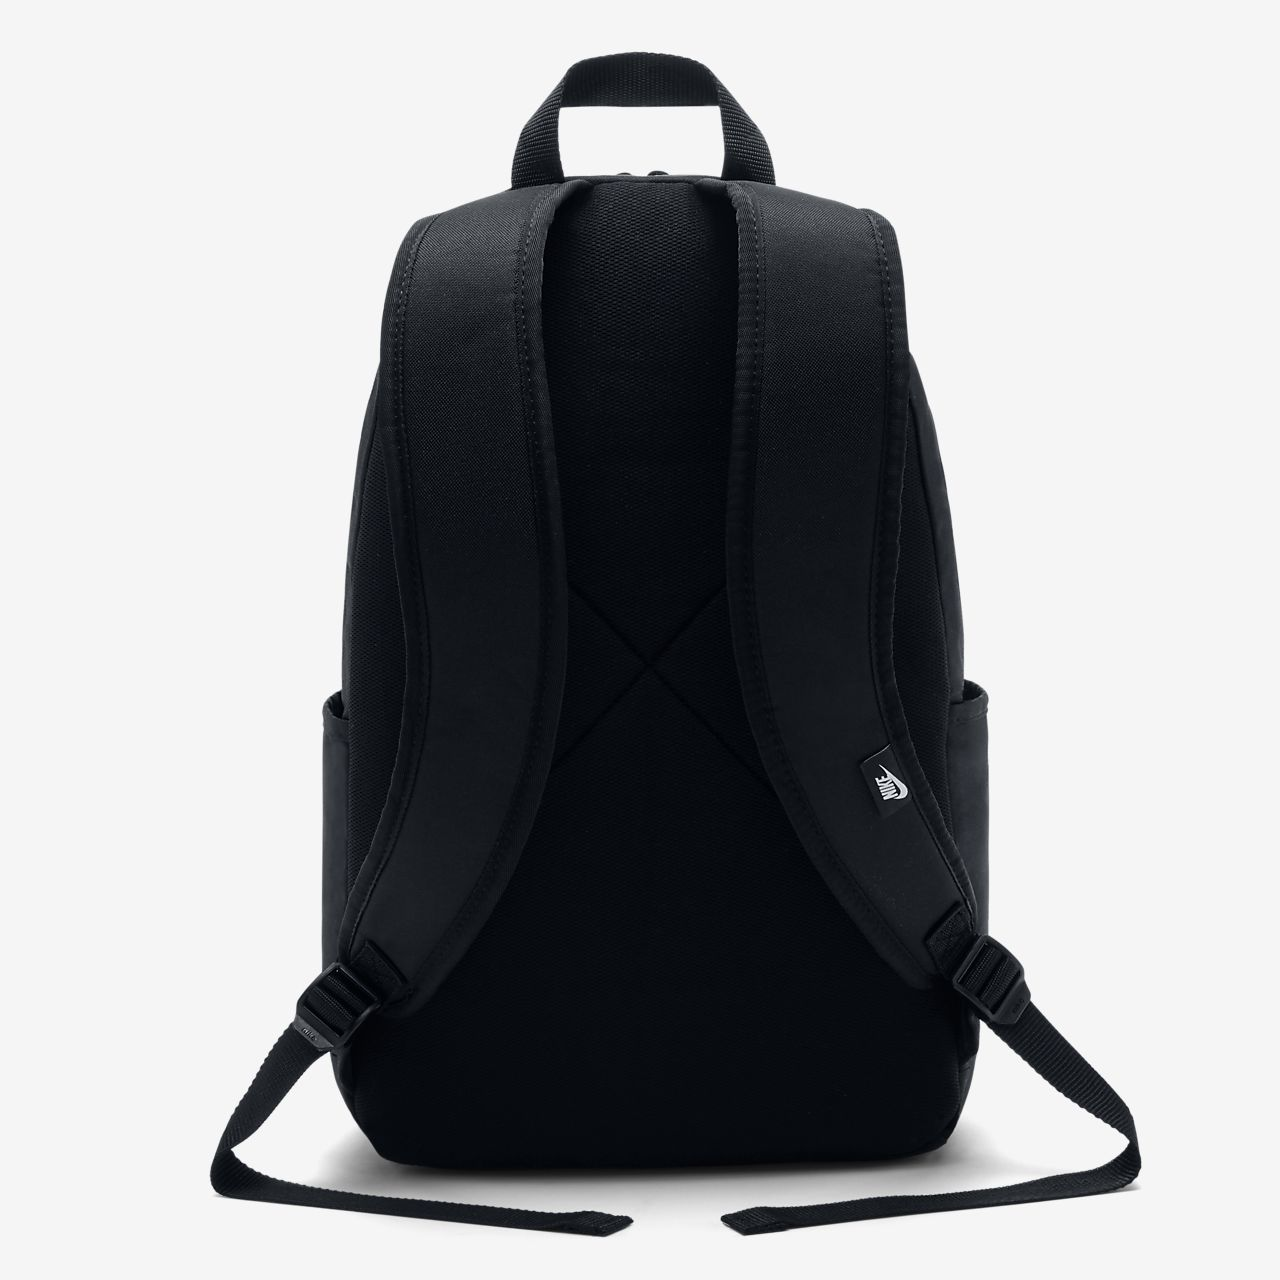 79faa93f11 Low Resolution Nike Sportswear Elemental Backpack Nike Sportswear Elemental  Backpack